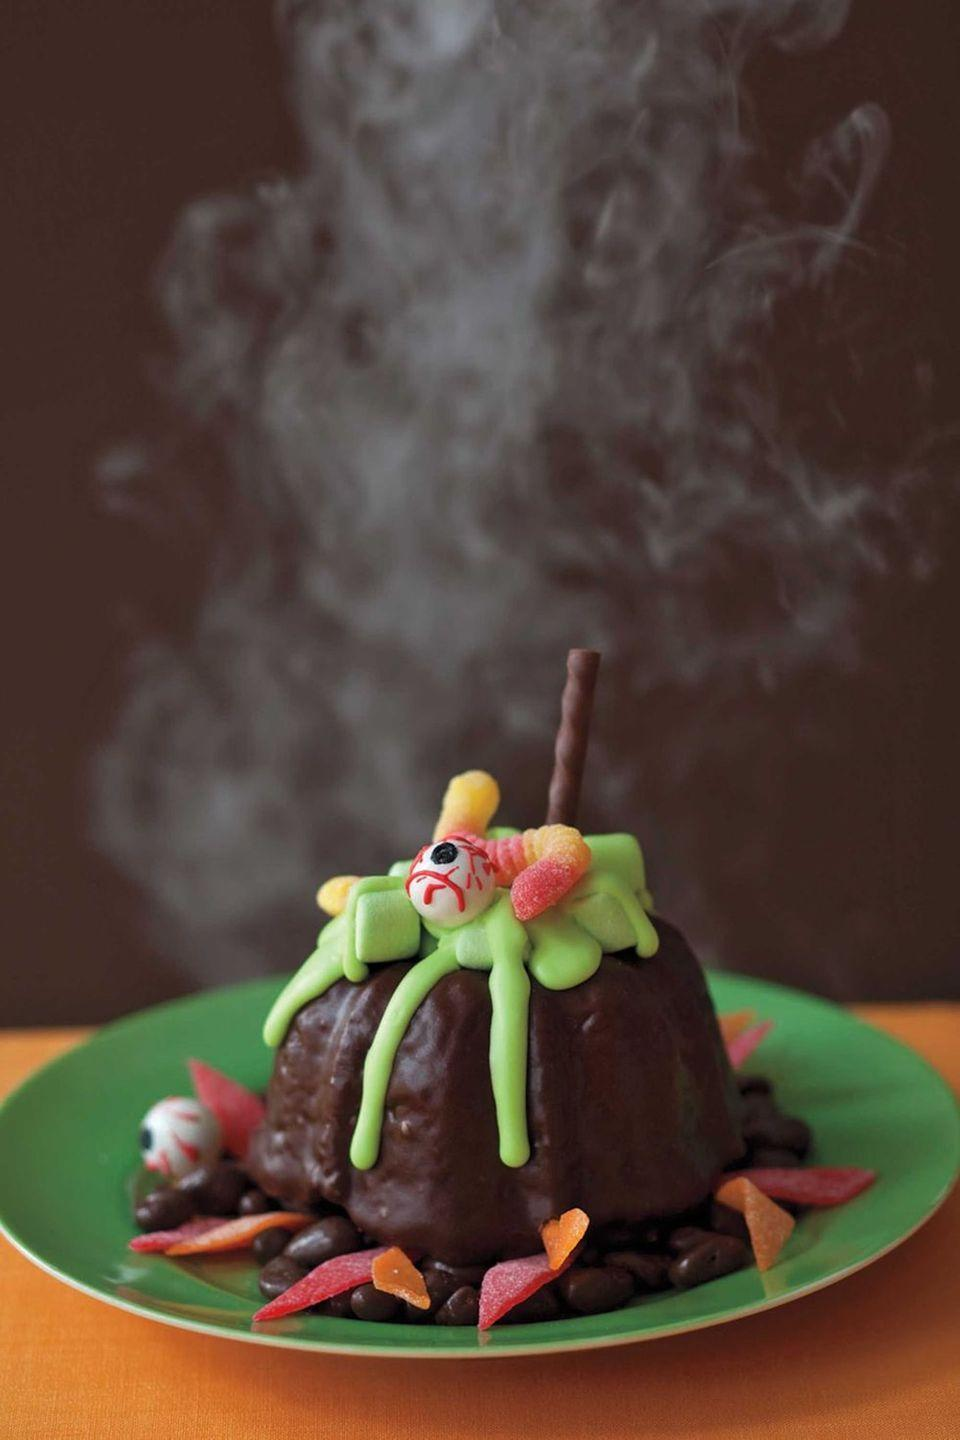 """<p>This fun take on a classic chocolate lava cake is sure to wow. Oozing with green frosting instead of a chocolate ganache, these desserts are guaranteed to scare, wow, and satisfy.</p><p><em><a href=""""https://www.womansday.com/food-recipes/food-drinks/recipes/a11039/mini-cauldrons-recipe-122469/"""" rel=""""nofollow noopener"""" target=""""_blank"""" data-ylk=""""slk:Get the recipe for Mini Cauldrons."""" class=""""link rapid-noclick-resp"""">Get the recipe for Mini Cauldrons. </a></em></p>"""